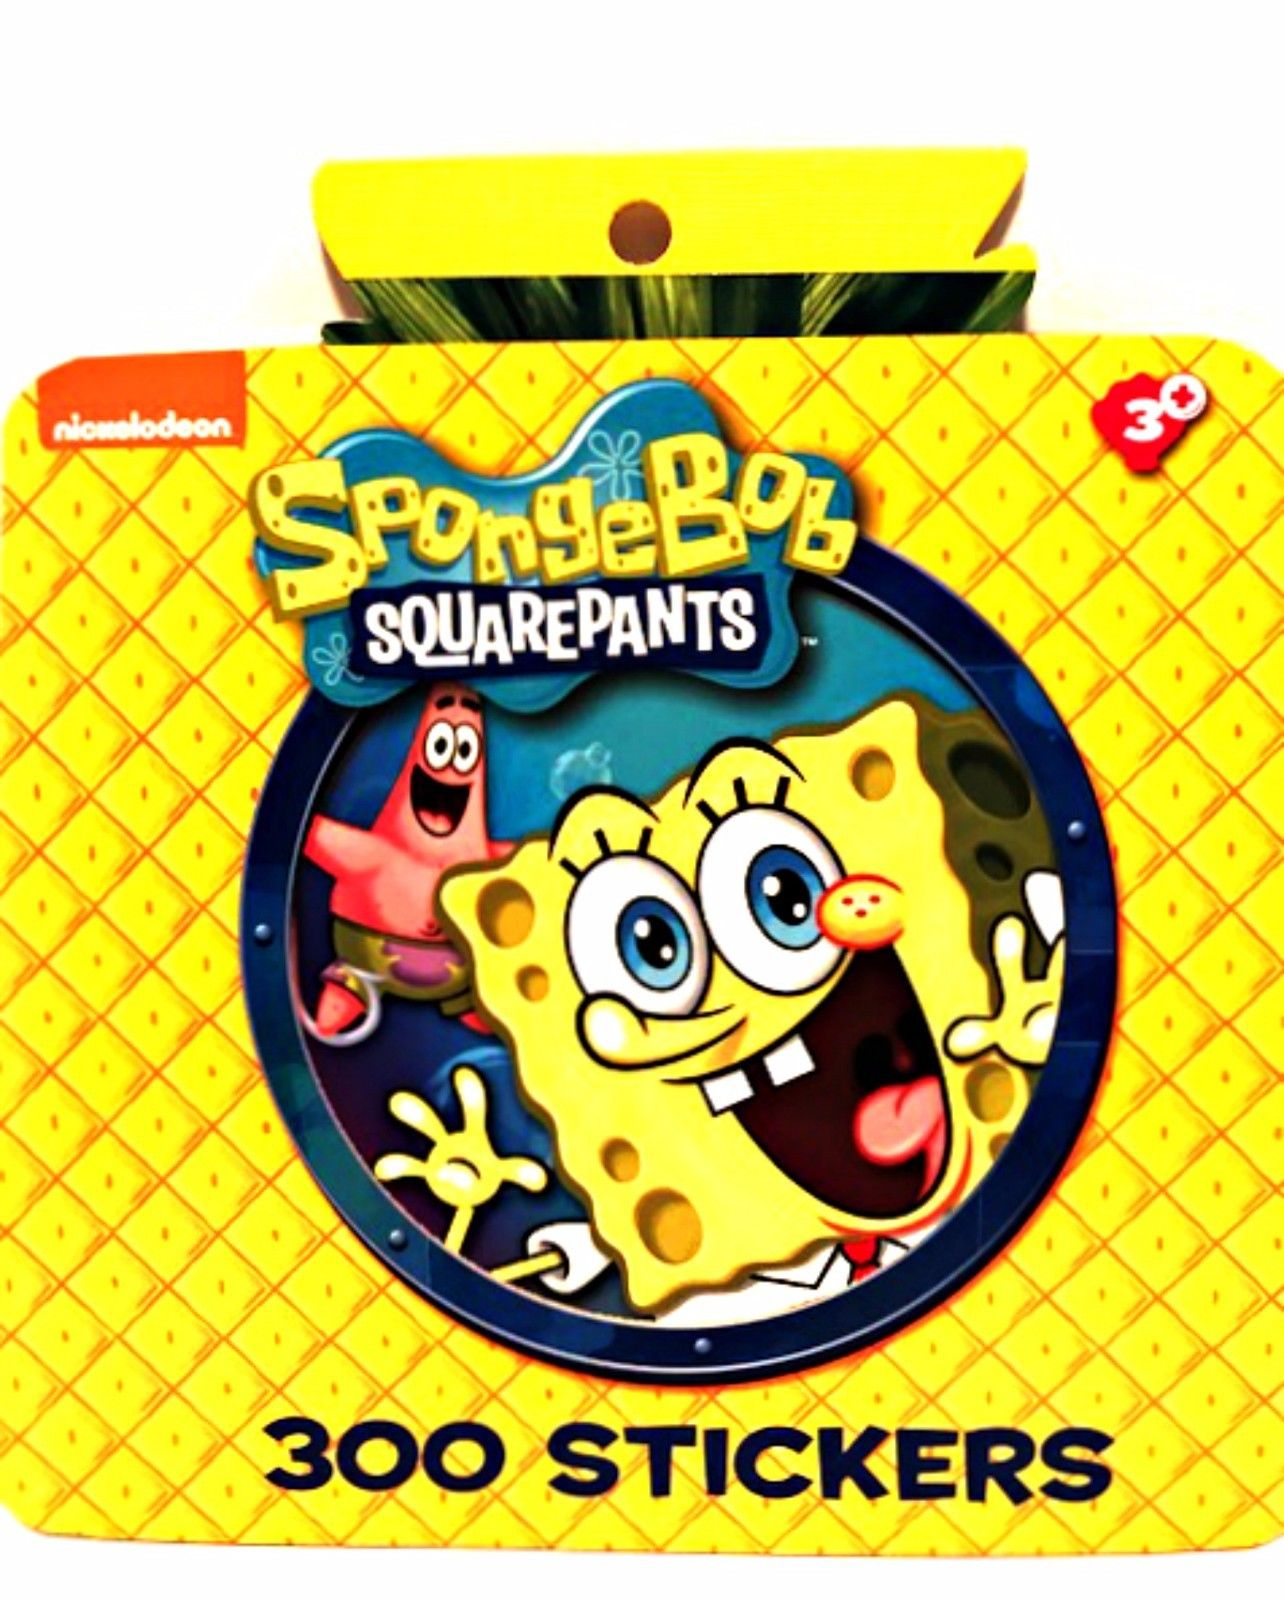 Nickelodeon Spongebob Squarepants 300 Stickers Book